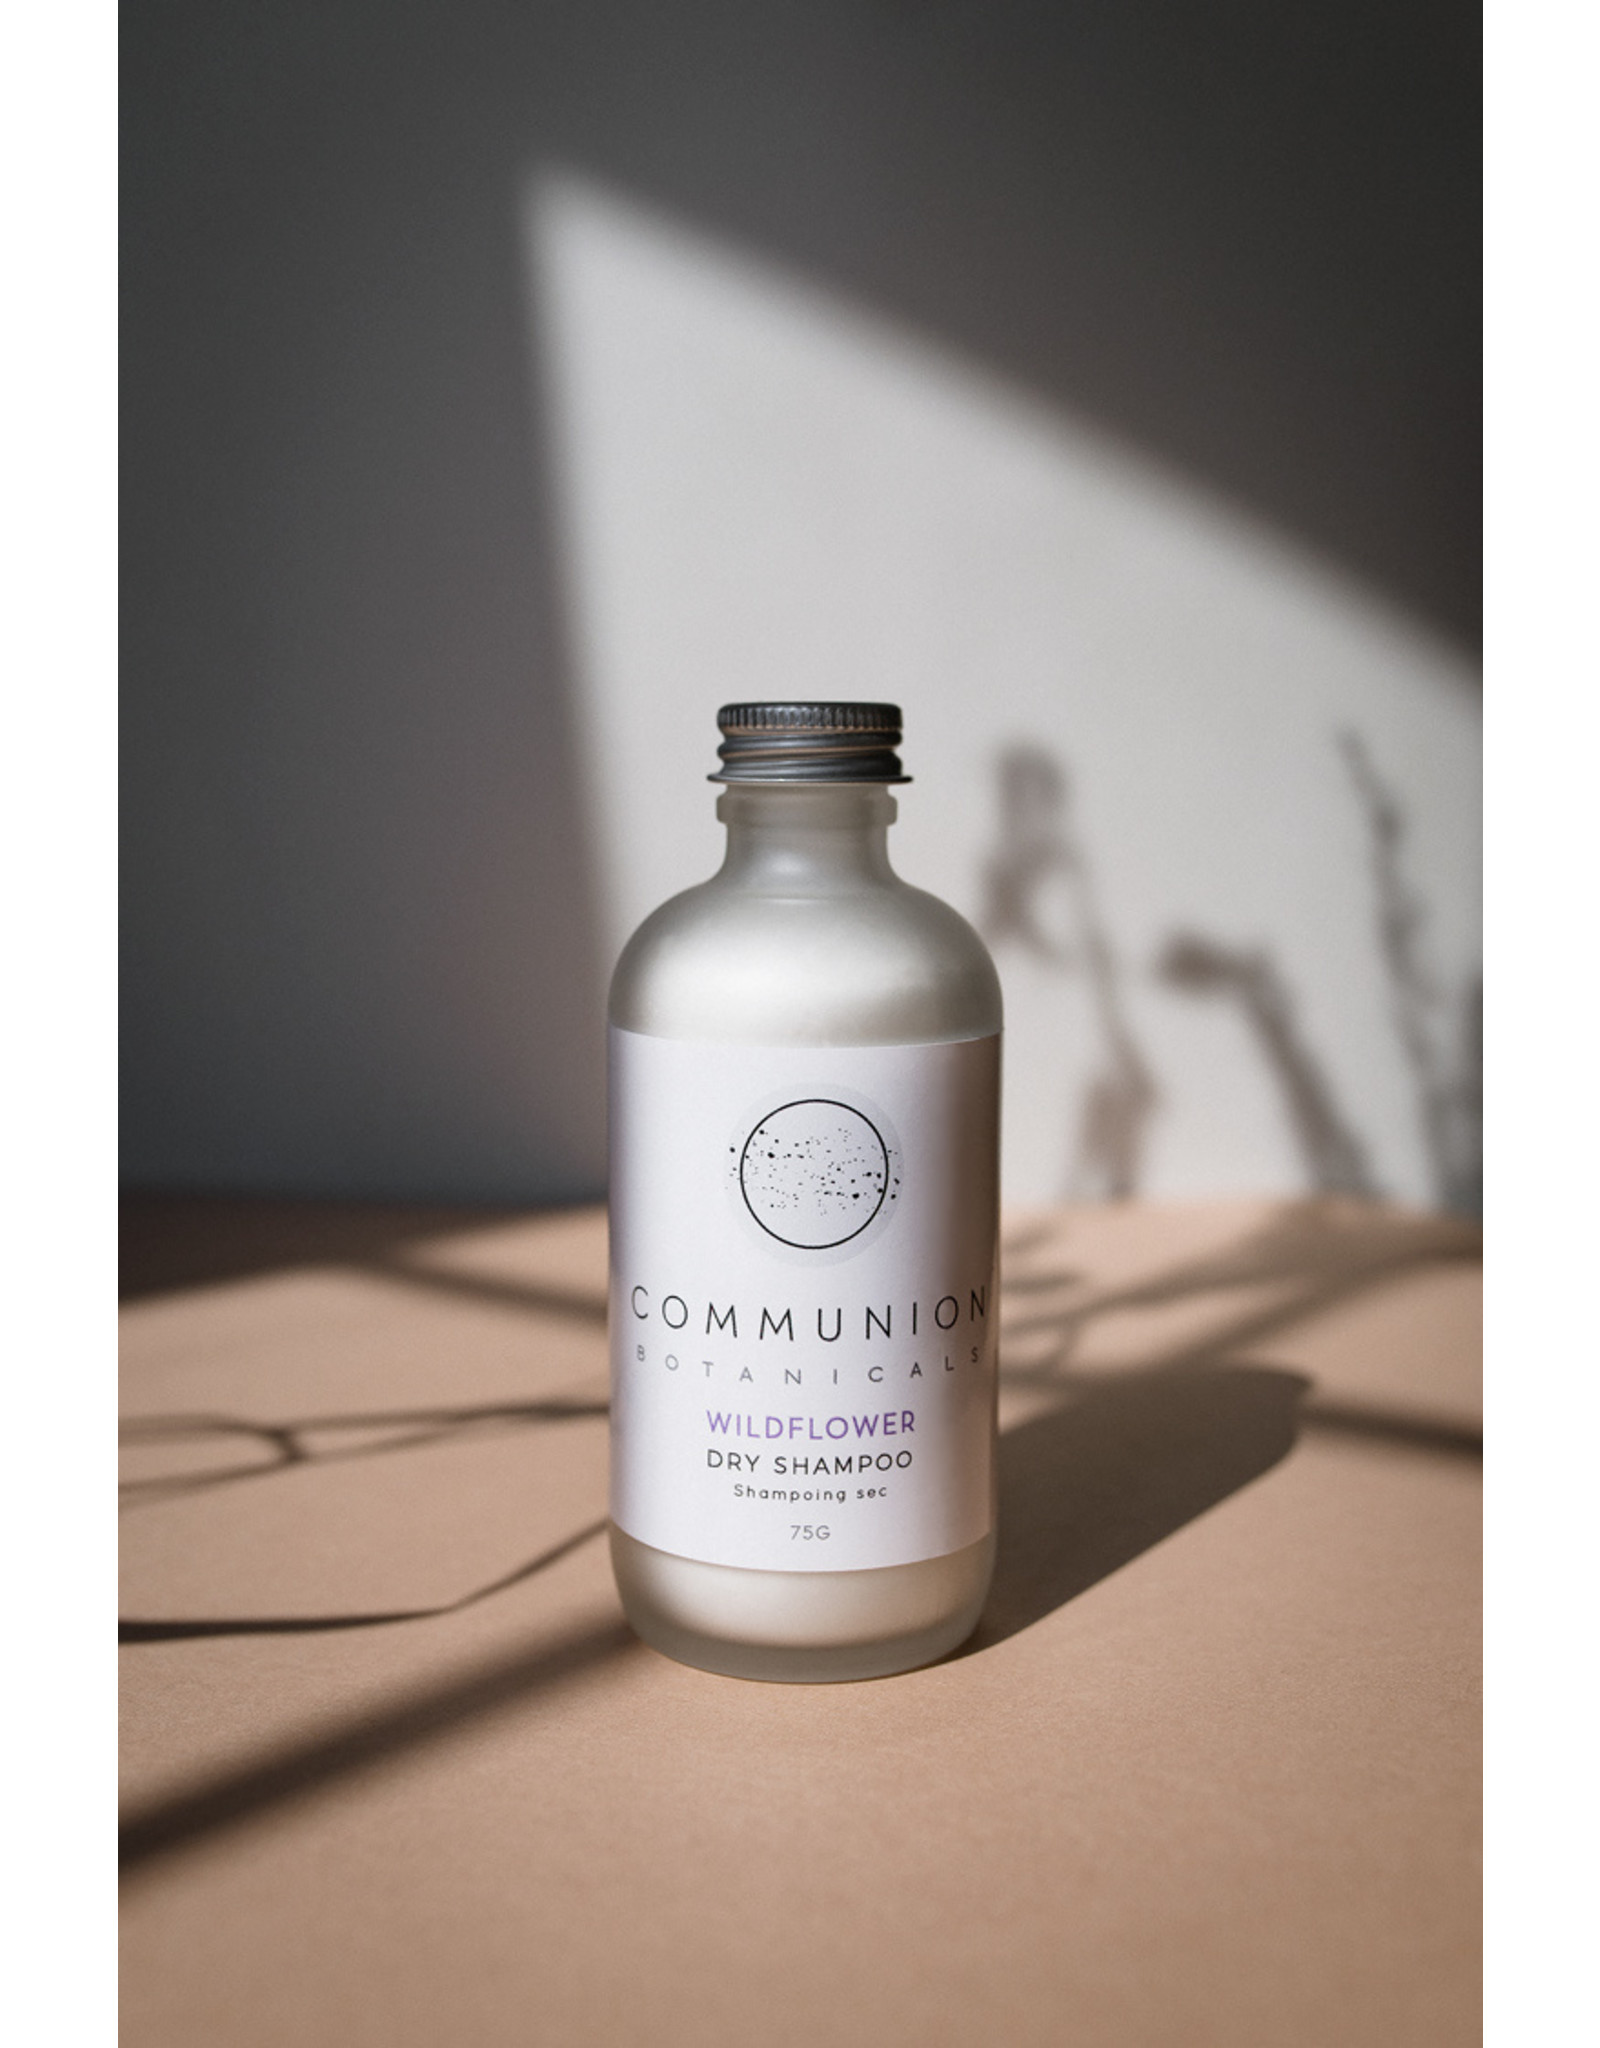 Communion Botanicals Wildflower Dry Shampoo